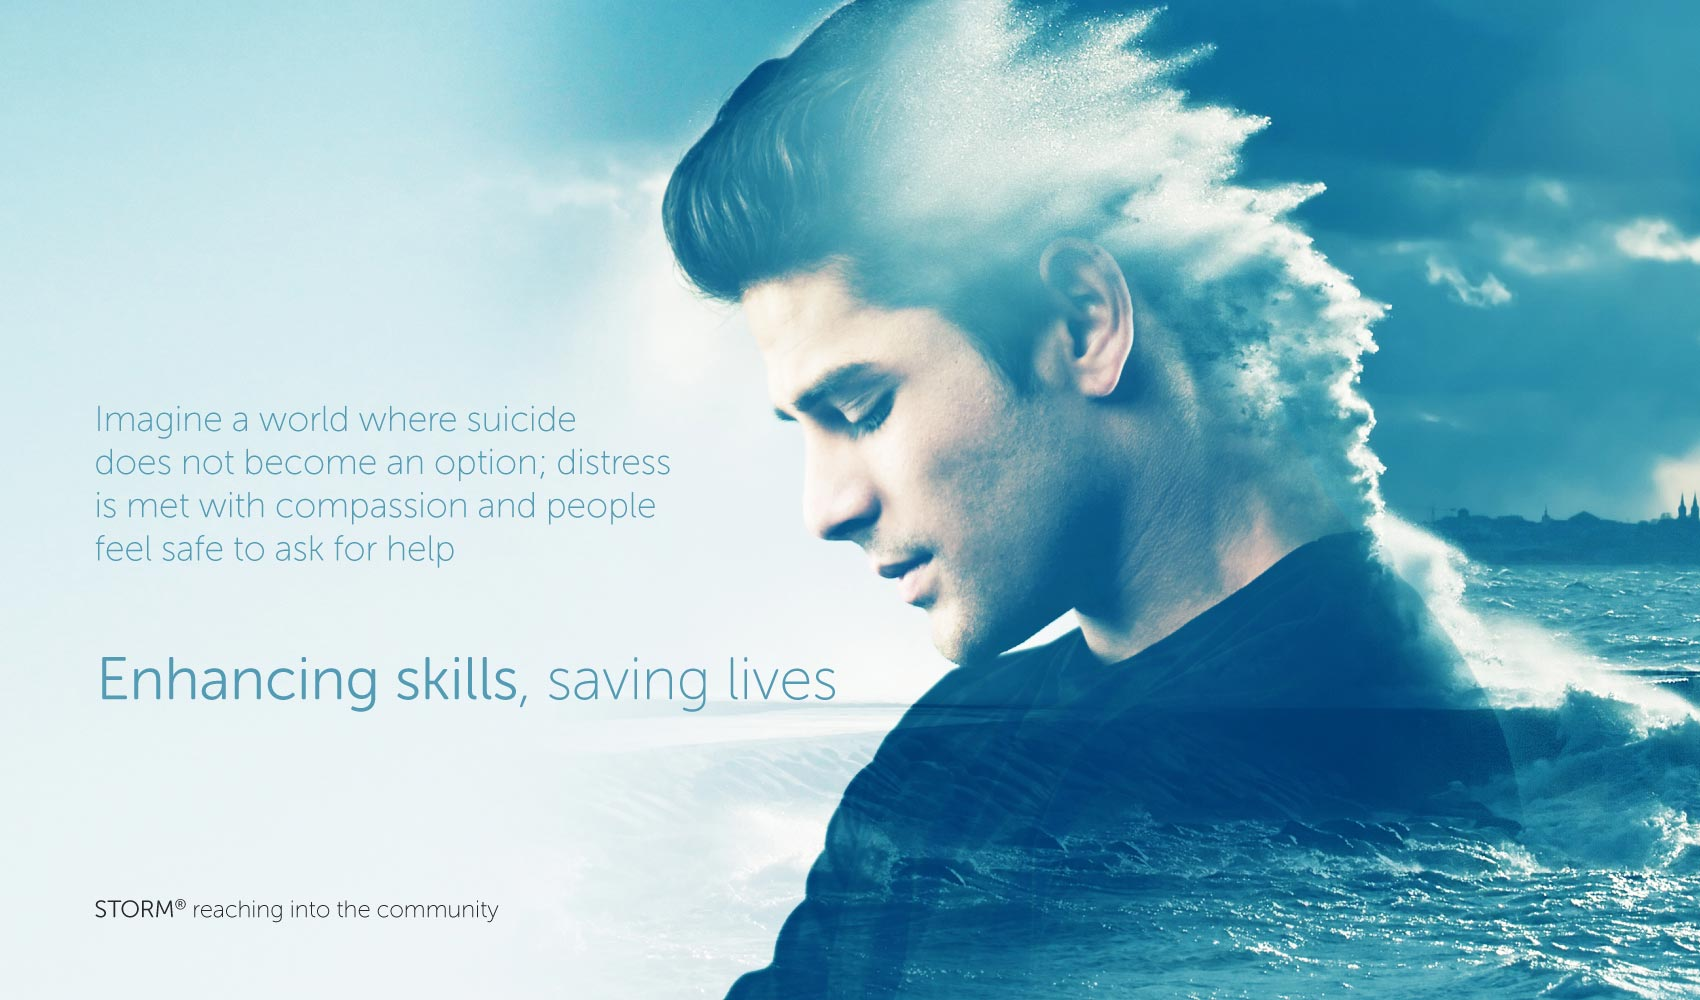 Storm Skills Training - Enhancing skills saving lives campaign by Twistedgifted